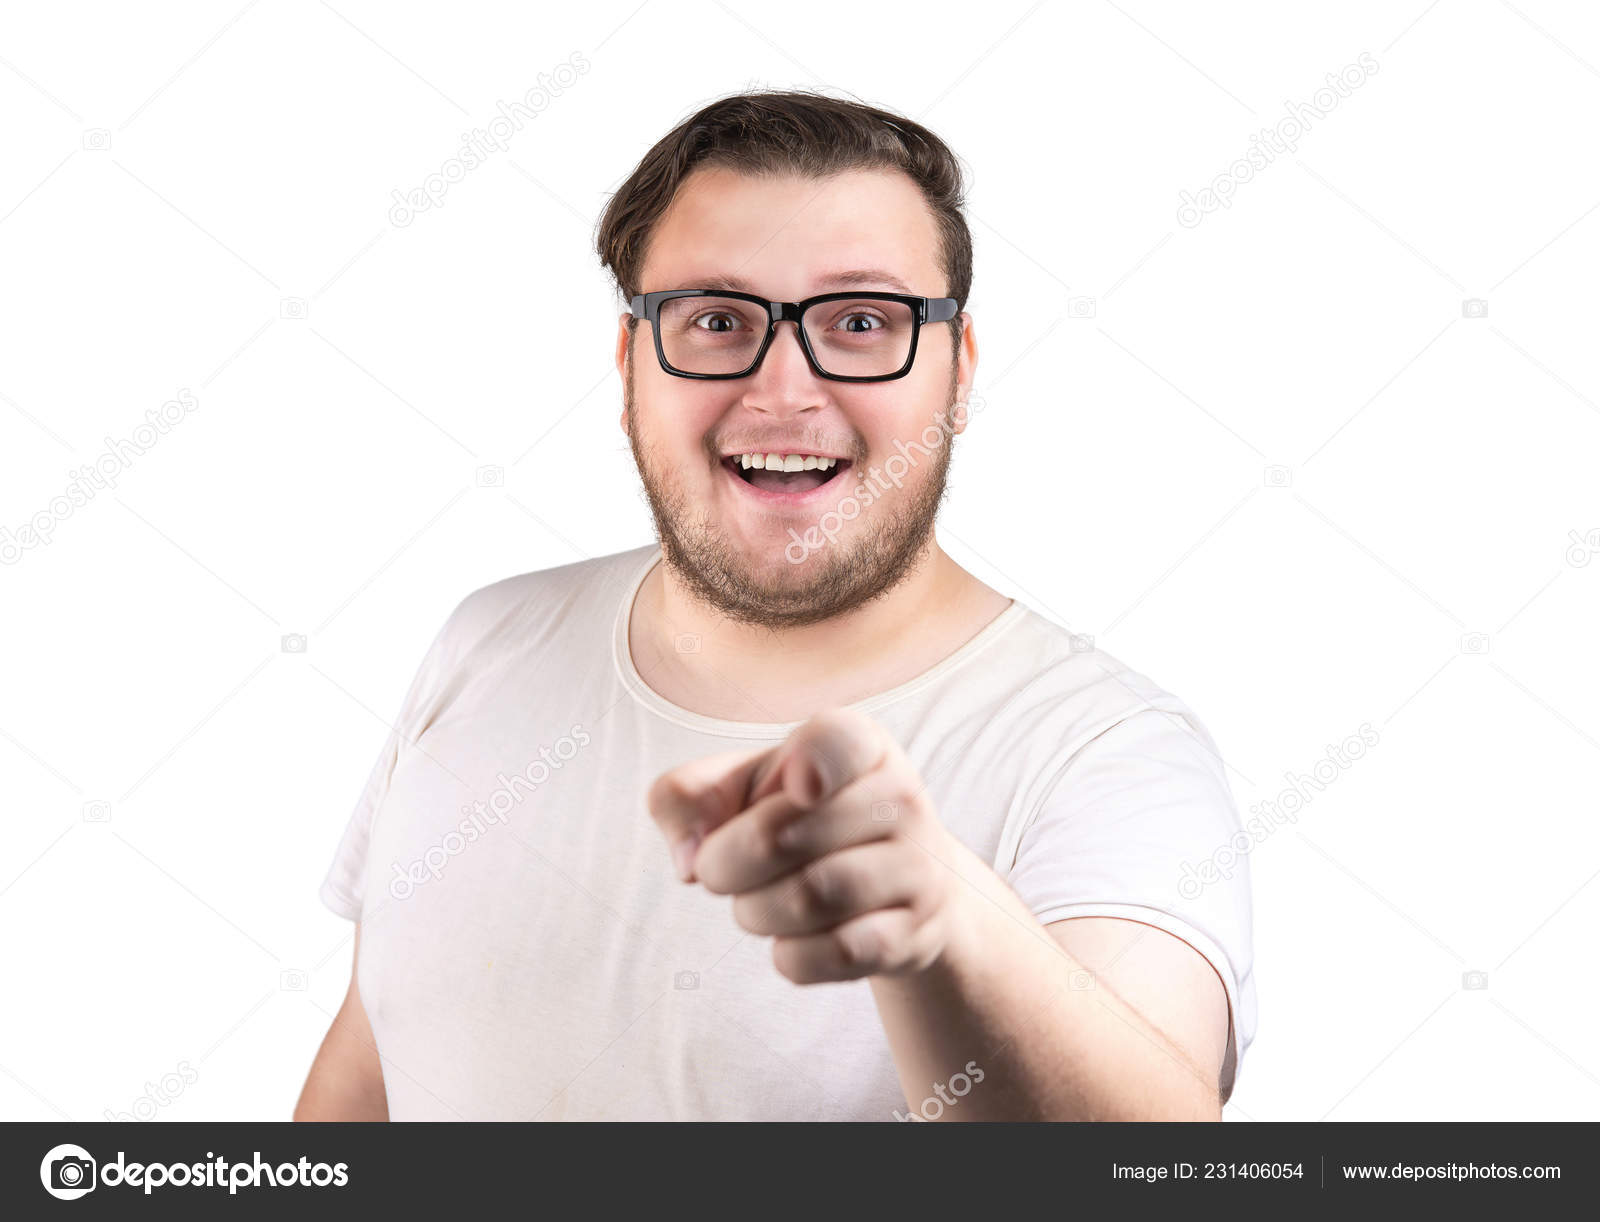 Cheerful chubby man in white t-shirt and glasses smiling and pointing at  camera isolated on white background– stock image